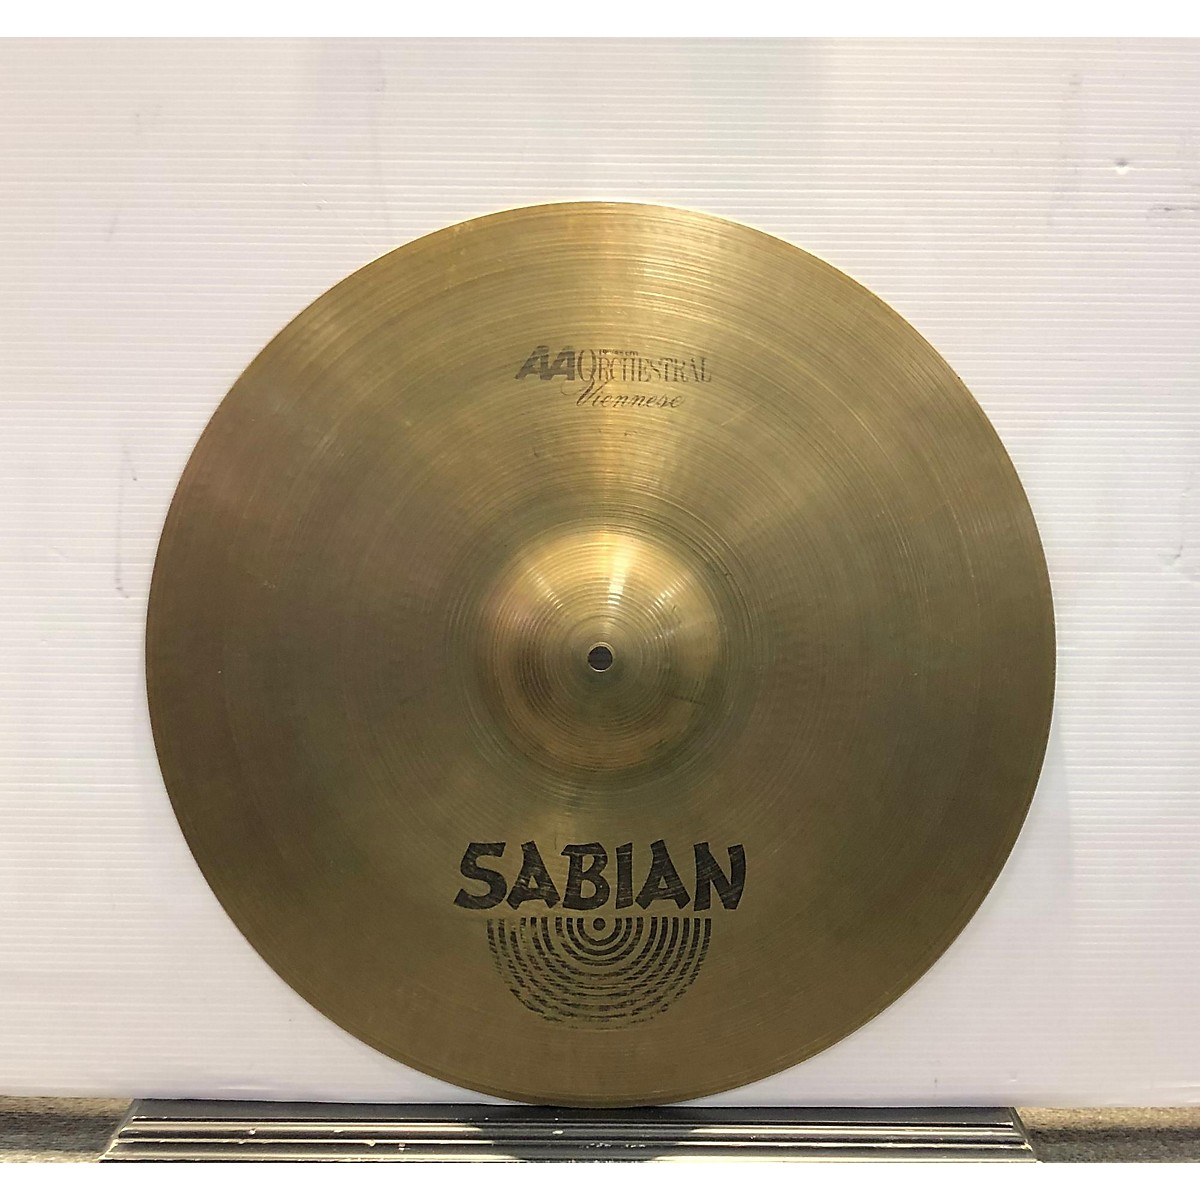 Sabian AA ORCHESTRAL VIENESSE Cymbal